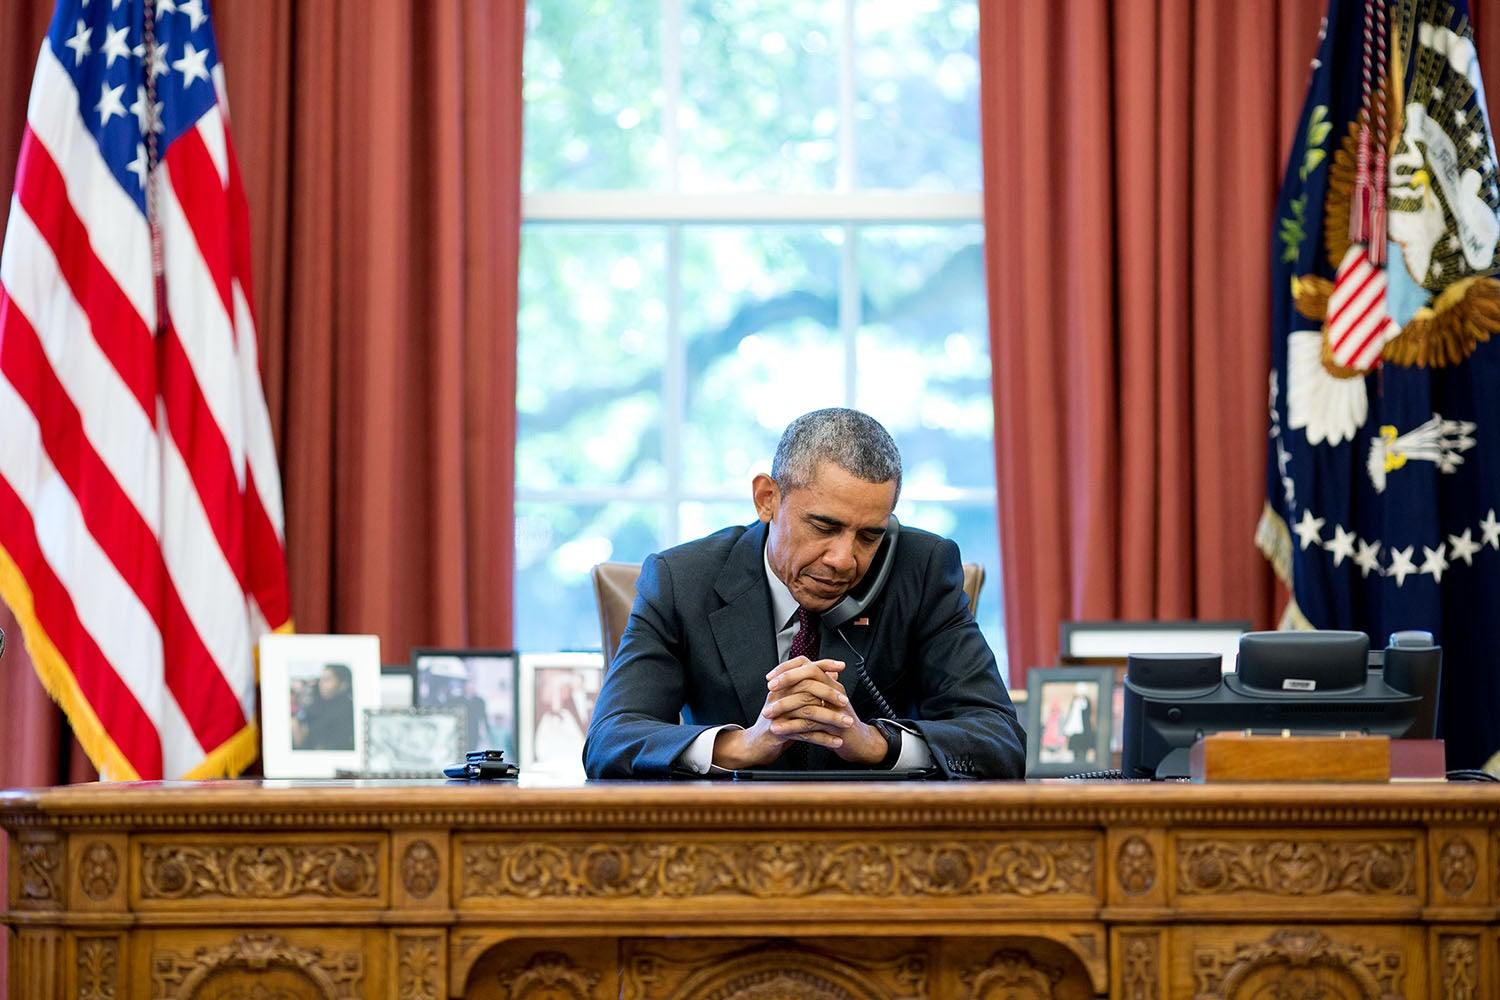 President Obama listens to a prayer during a phone call